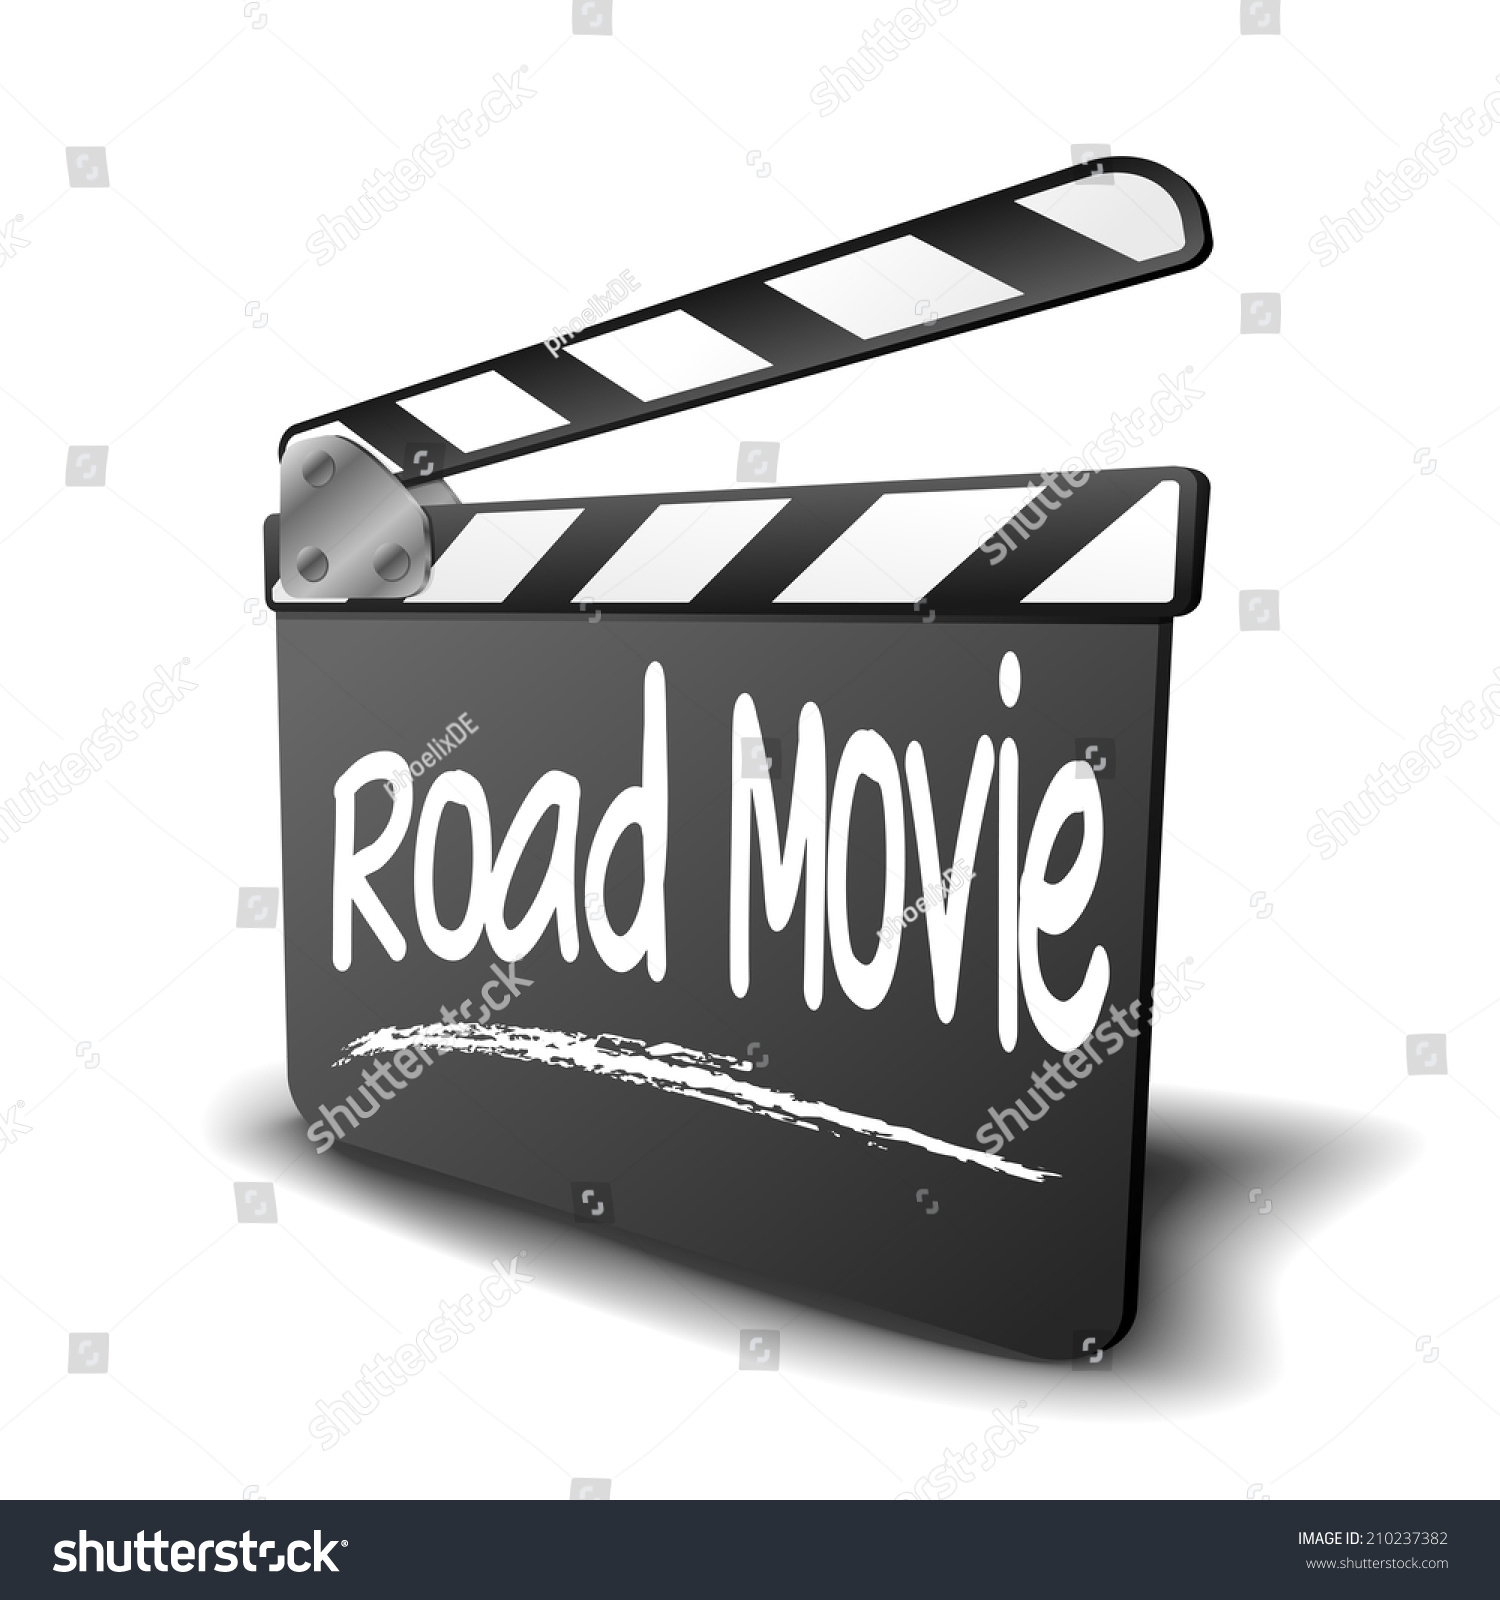 Detailed illustration clapper board road movie stock vector detailed illustration of a clapper board with road movie term symbol for film and video biocorpaavc